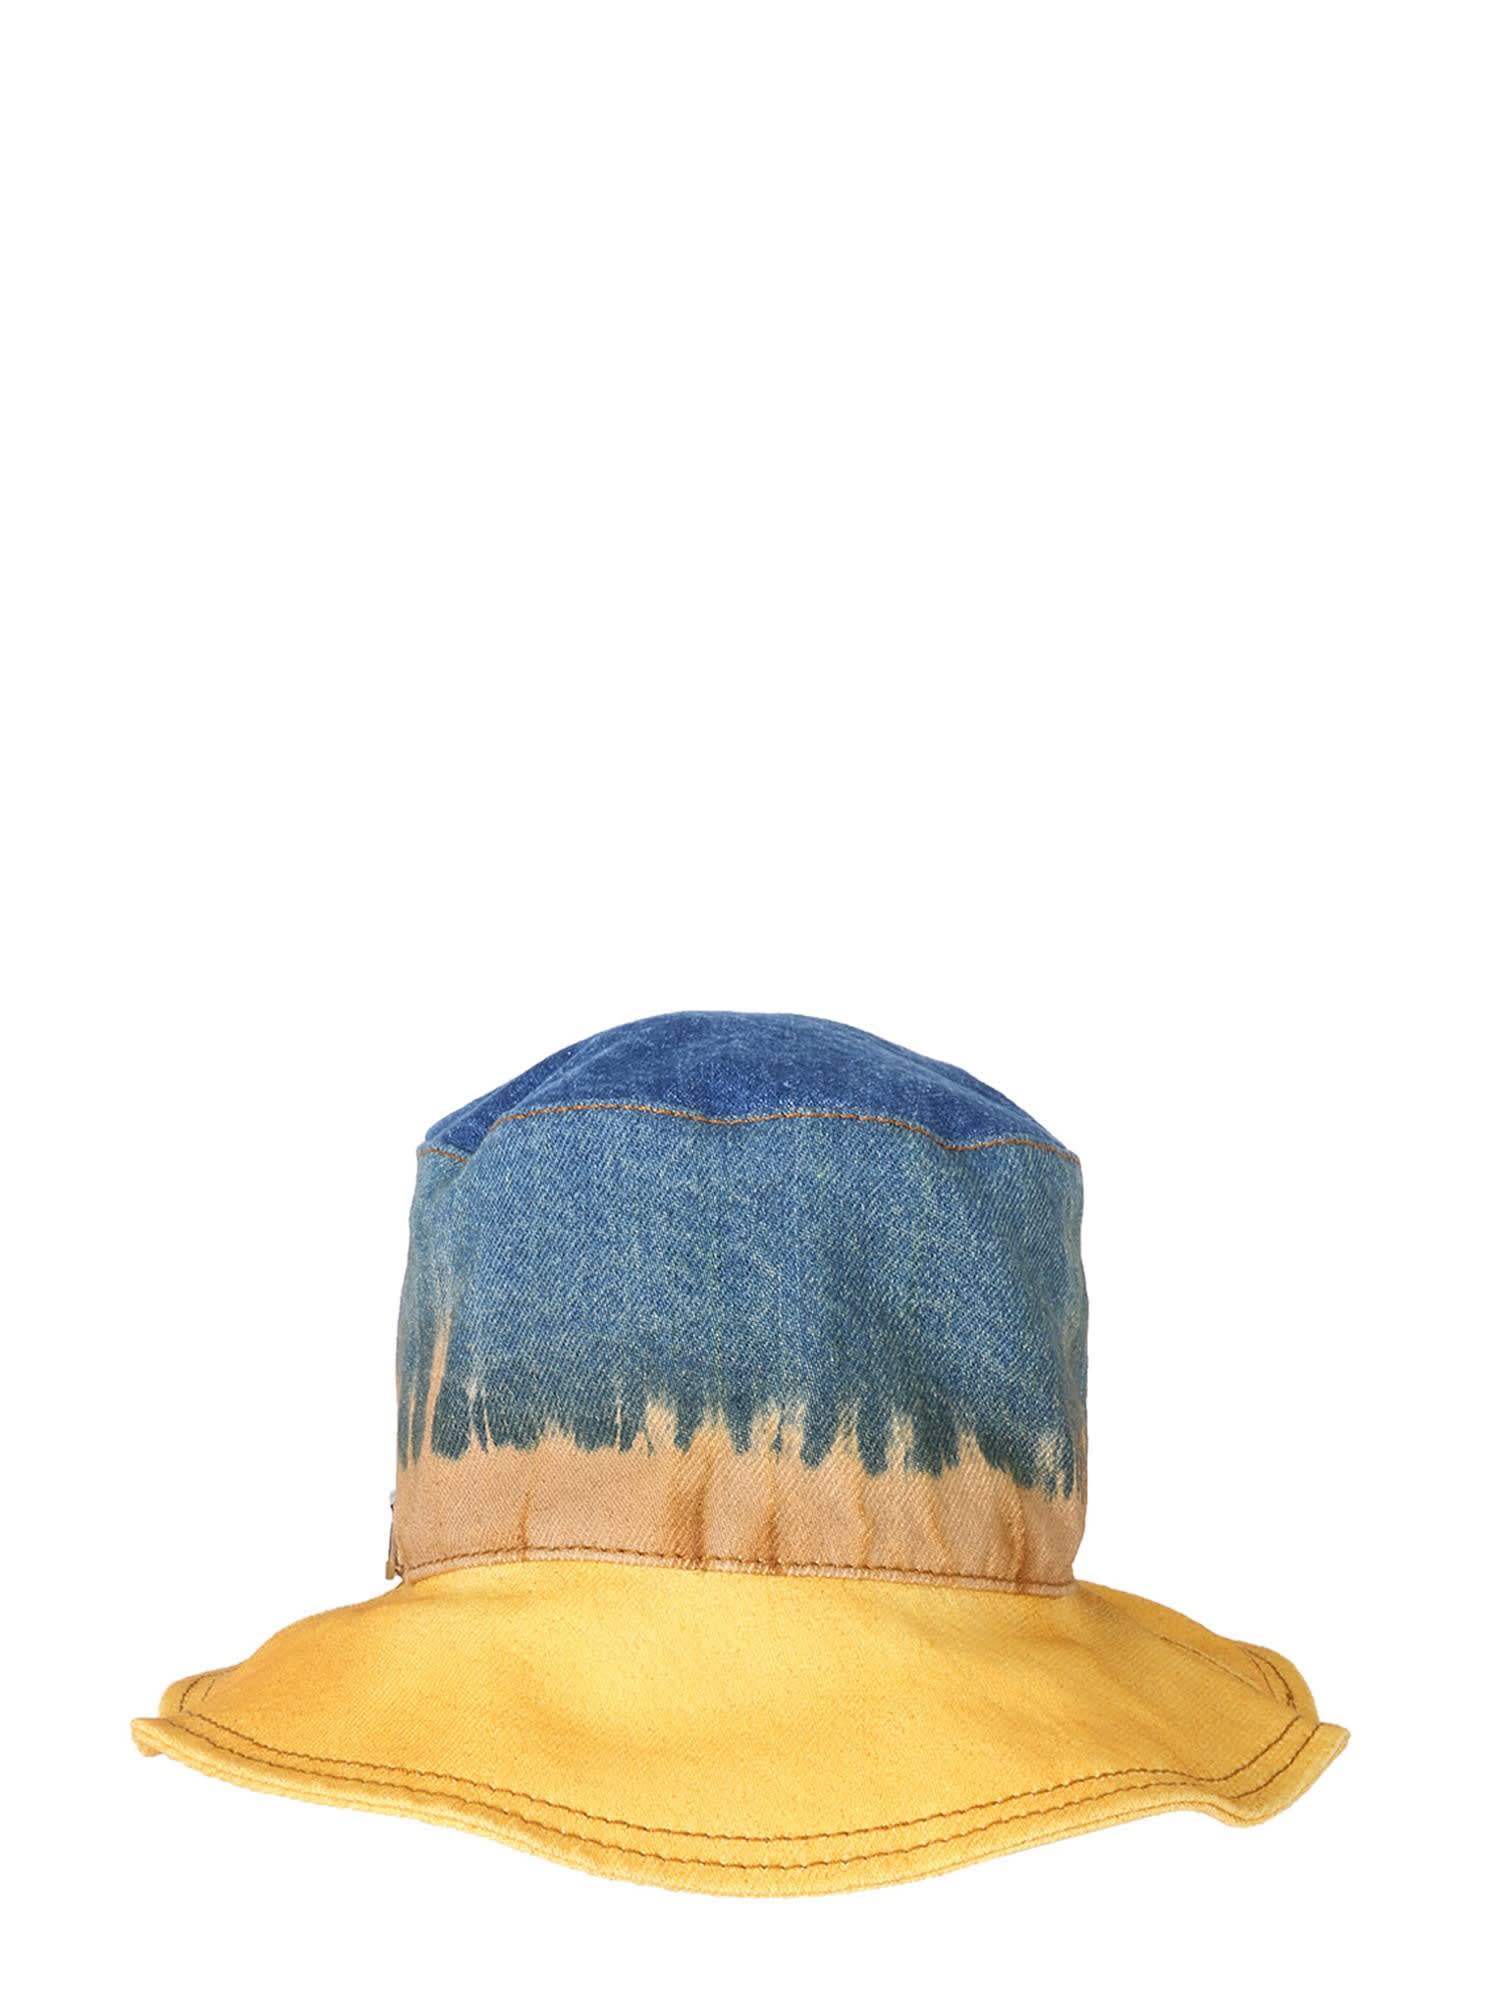 Alberta Ferretti Bucket Hat With Tie Dye Print